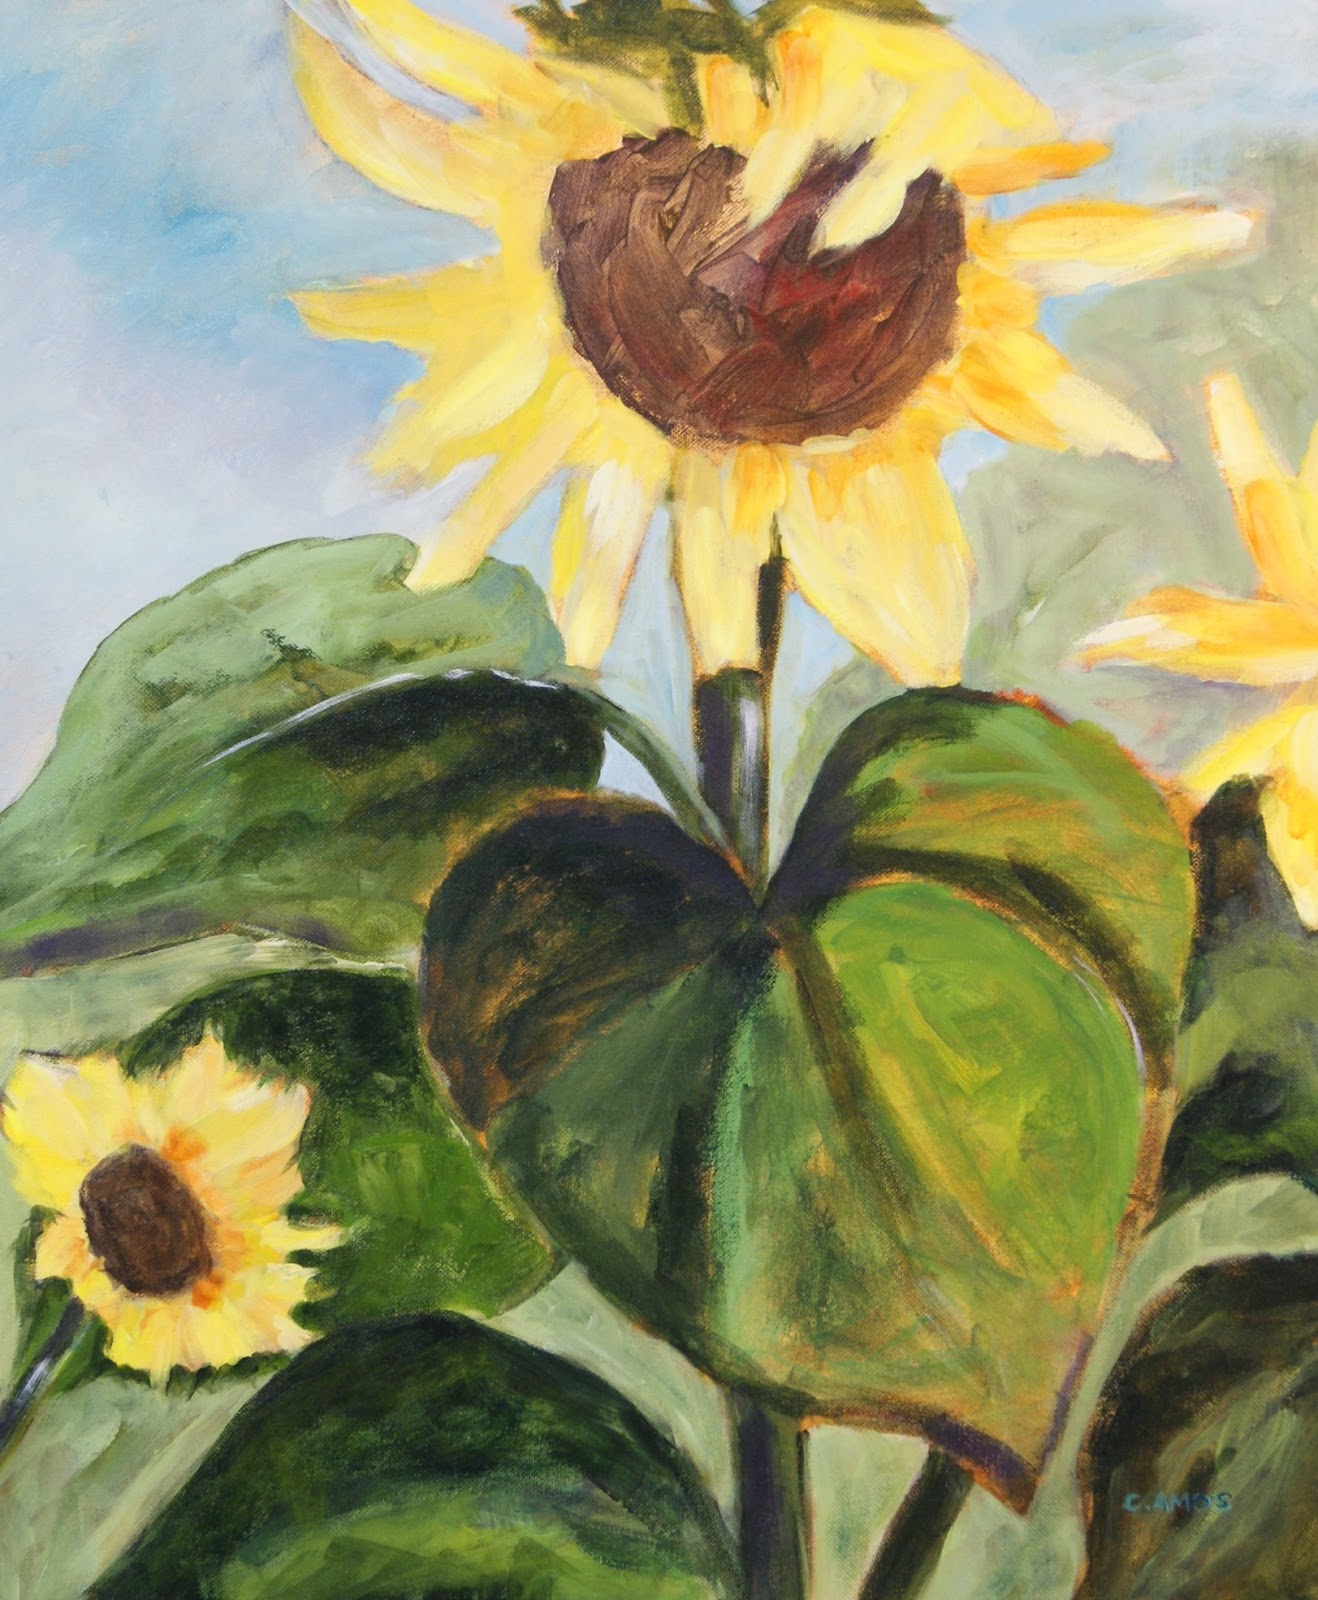 Acrylic Painting Classes Kitchener Waterloo